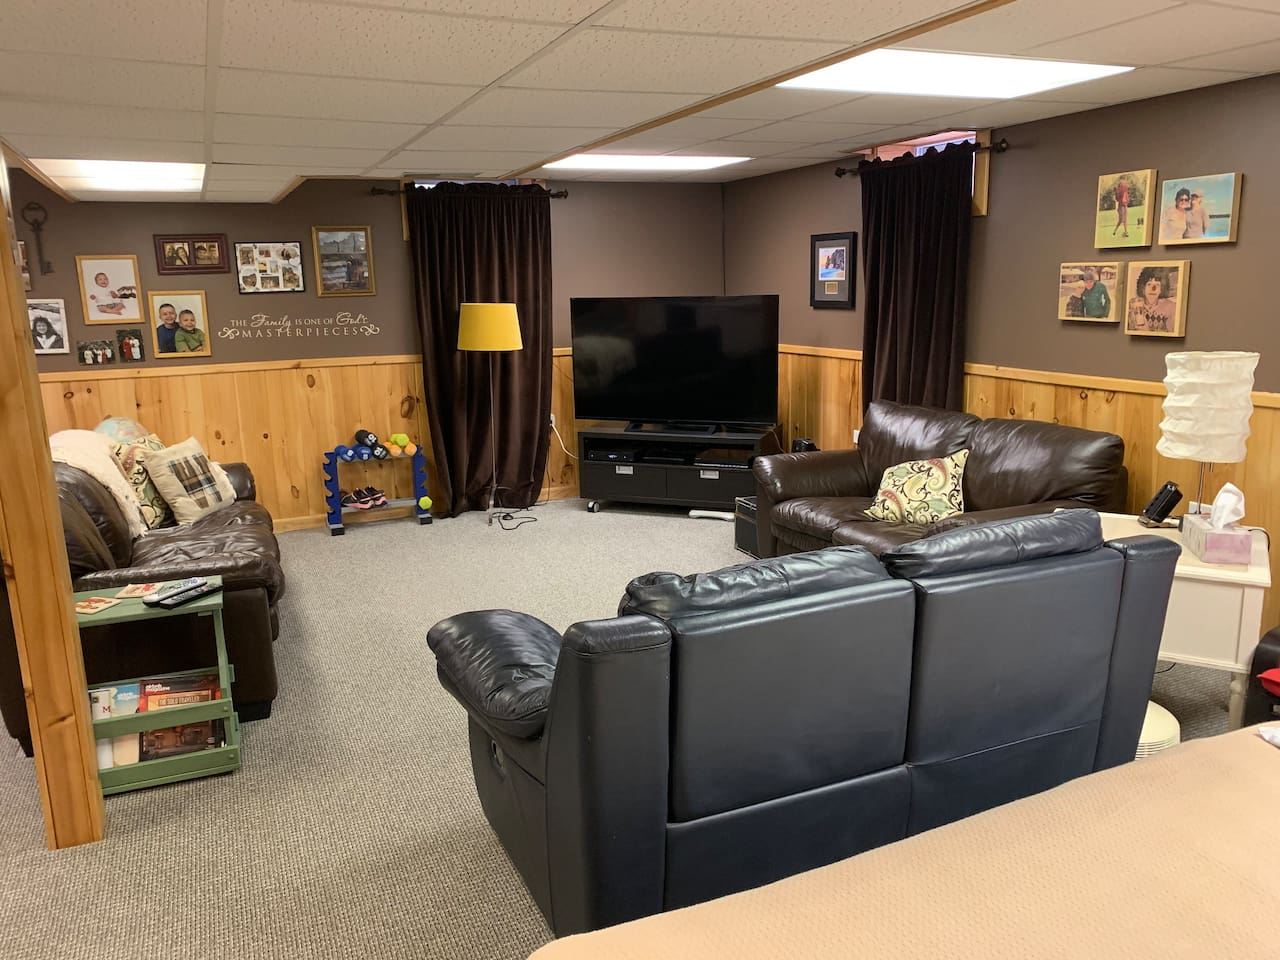 Spacious family room area with DVD, Blu-ray, and zillions of TV channels. Comfortable leather couches and recliners.